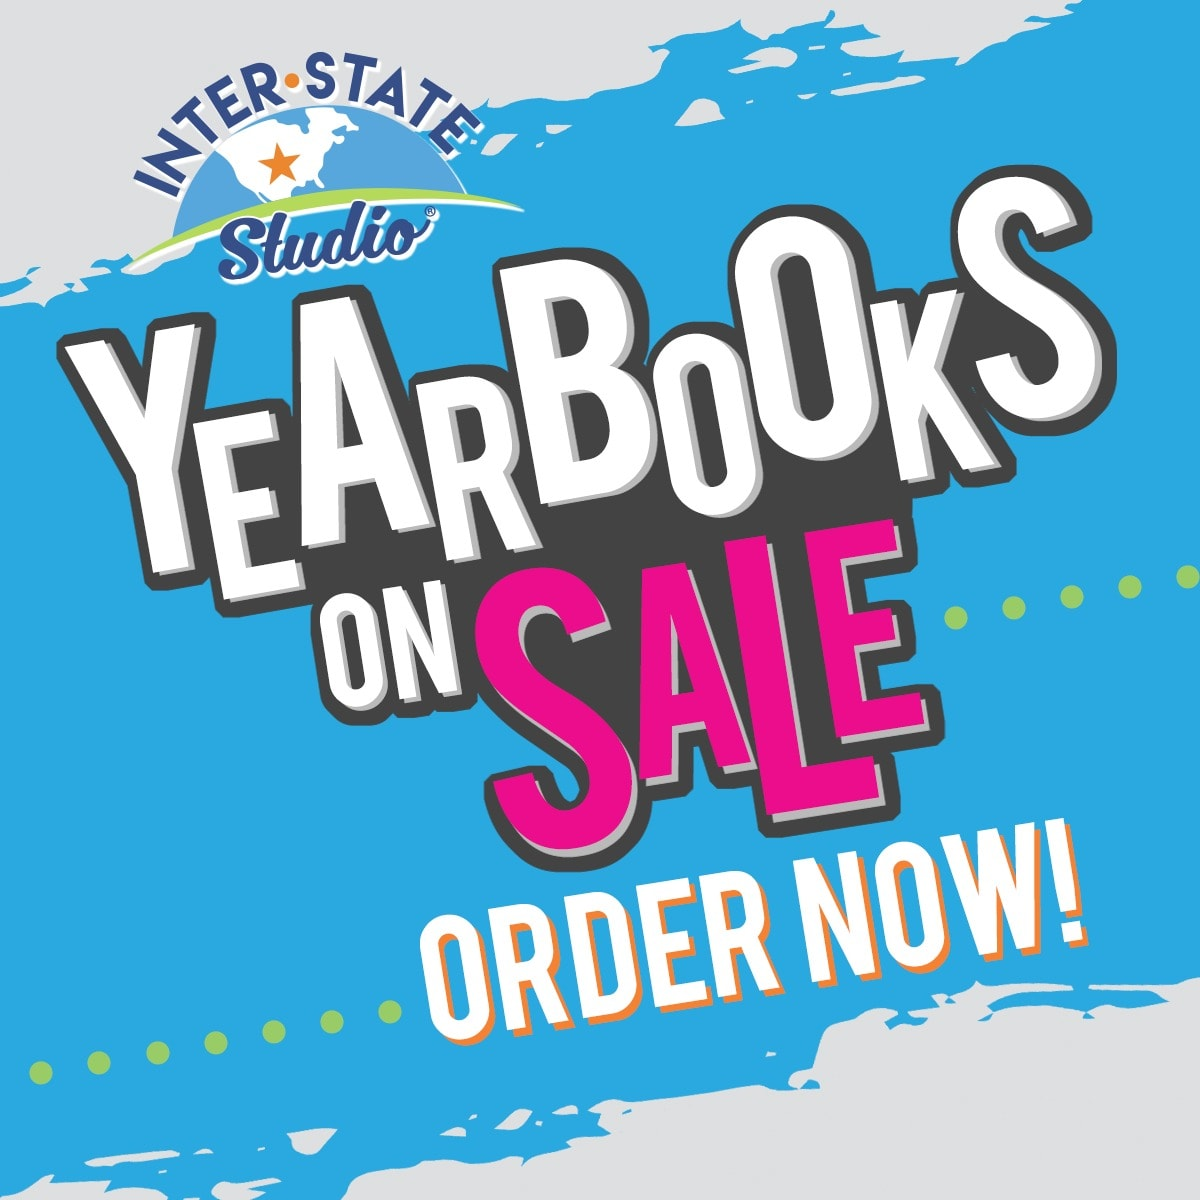 Yearbooks on Sale. Order Now!